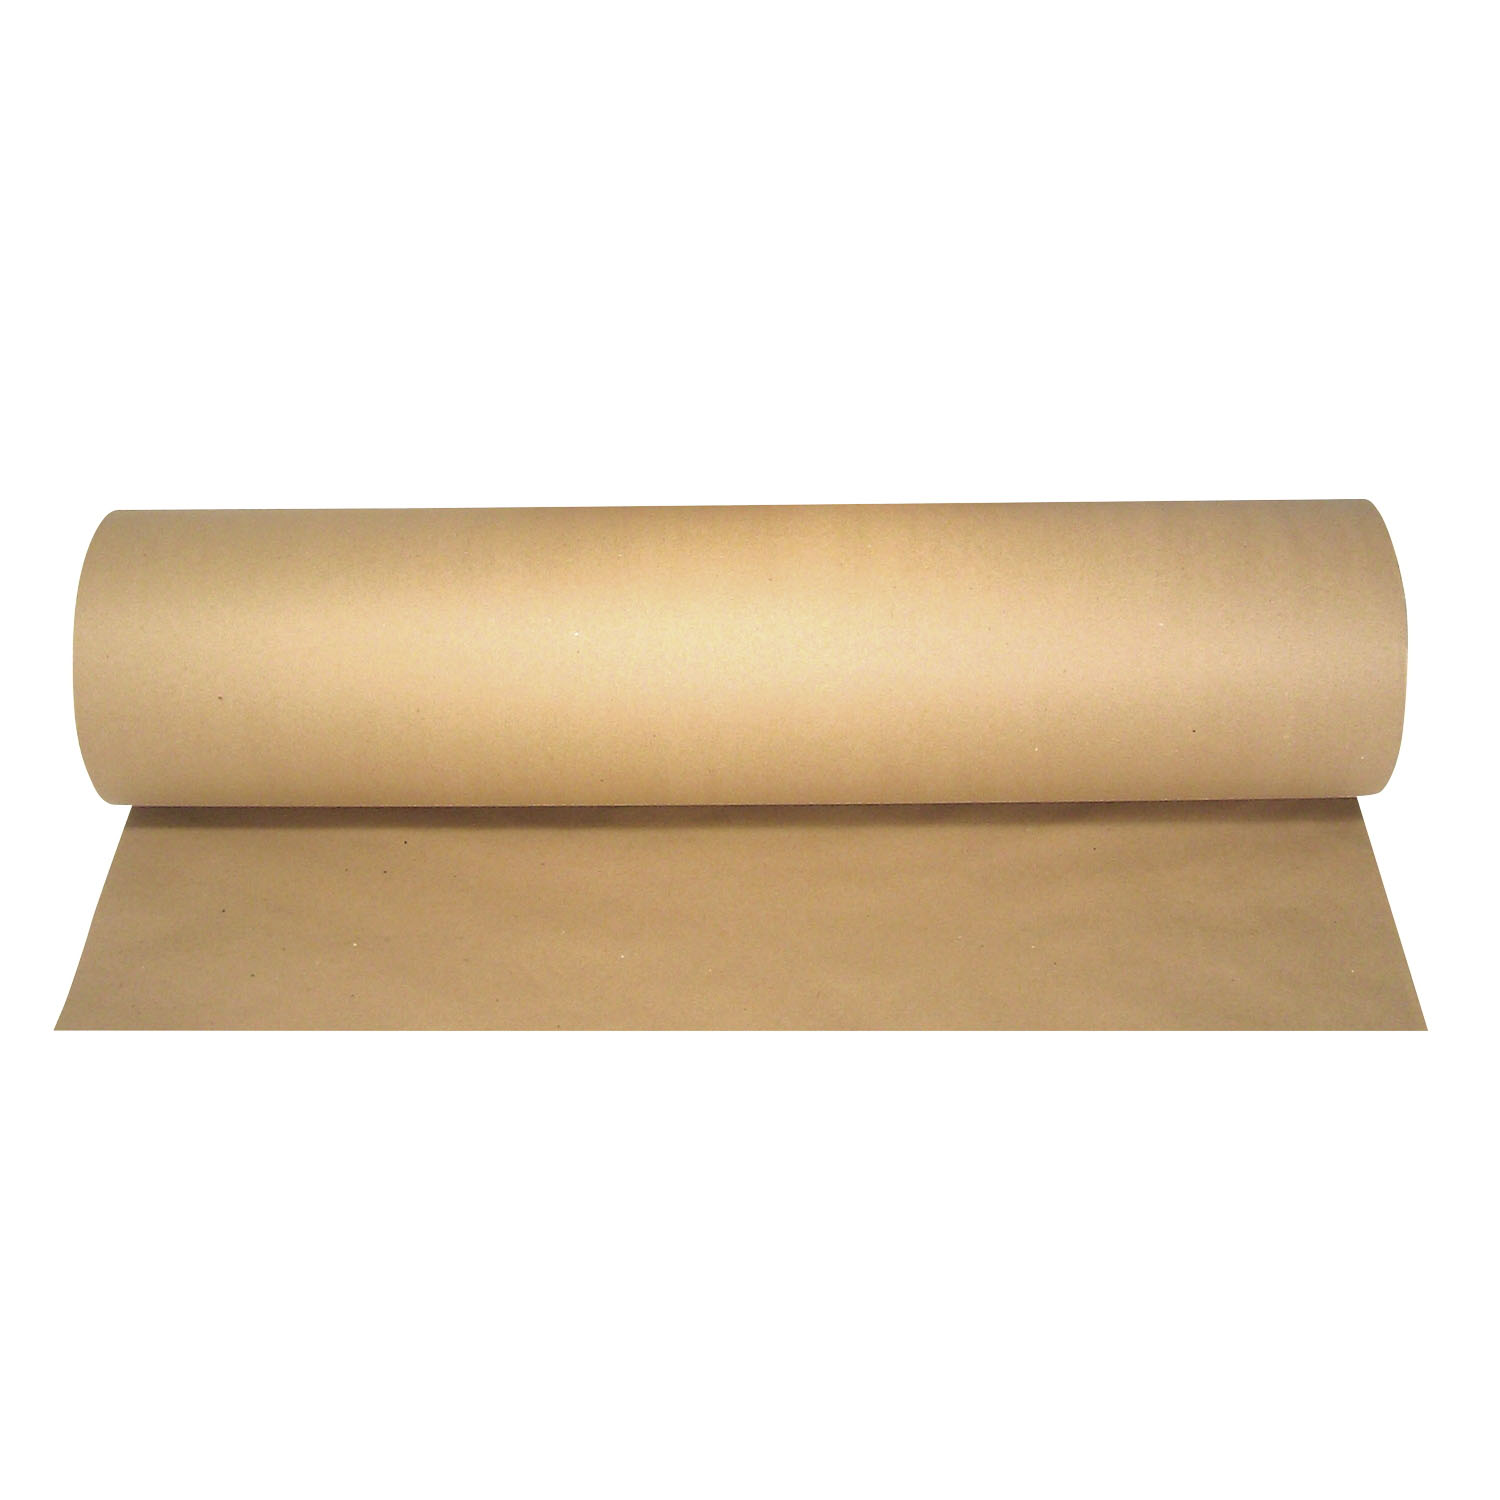 Crownhill brown kraft paper wrap rolls grand toy for Brown craft paper rolls